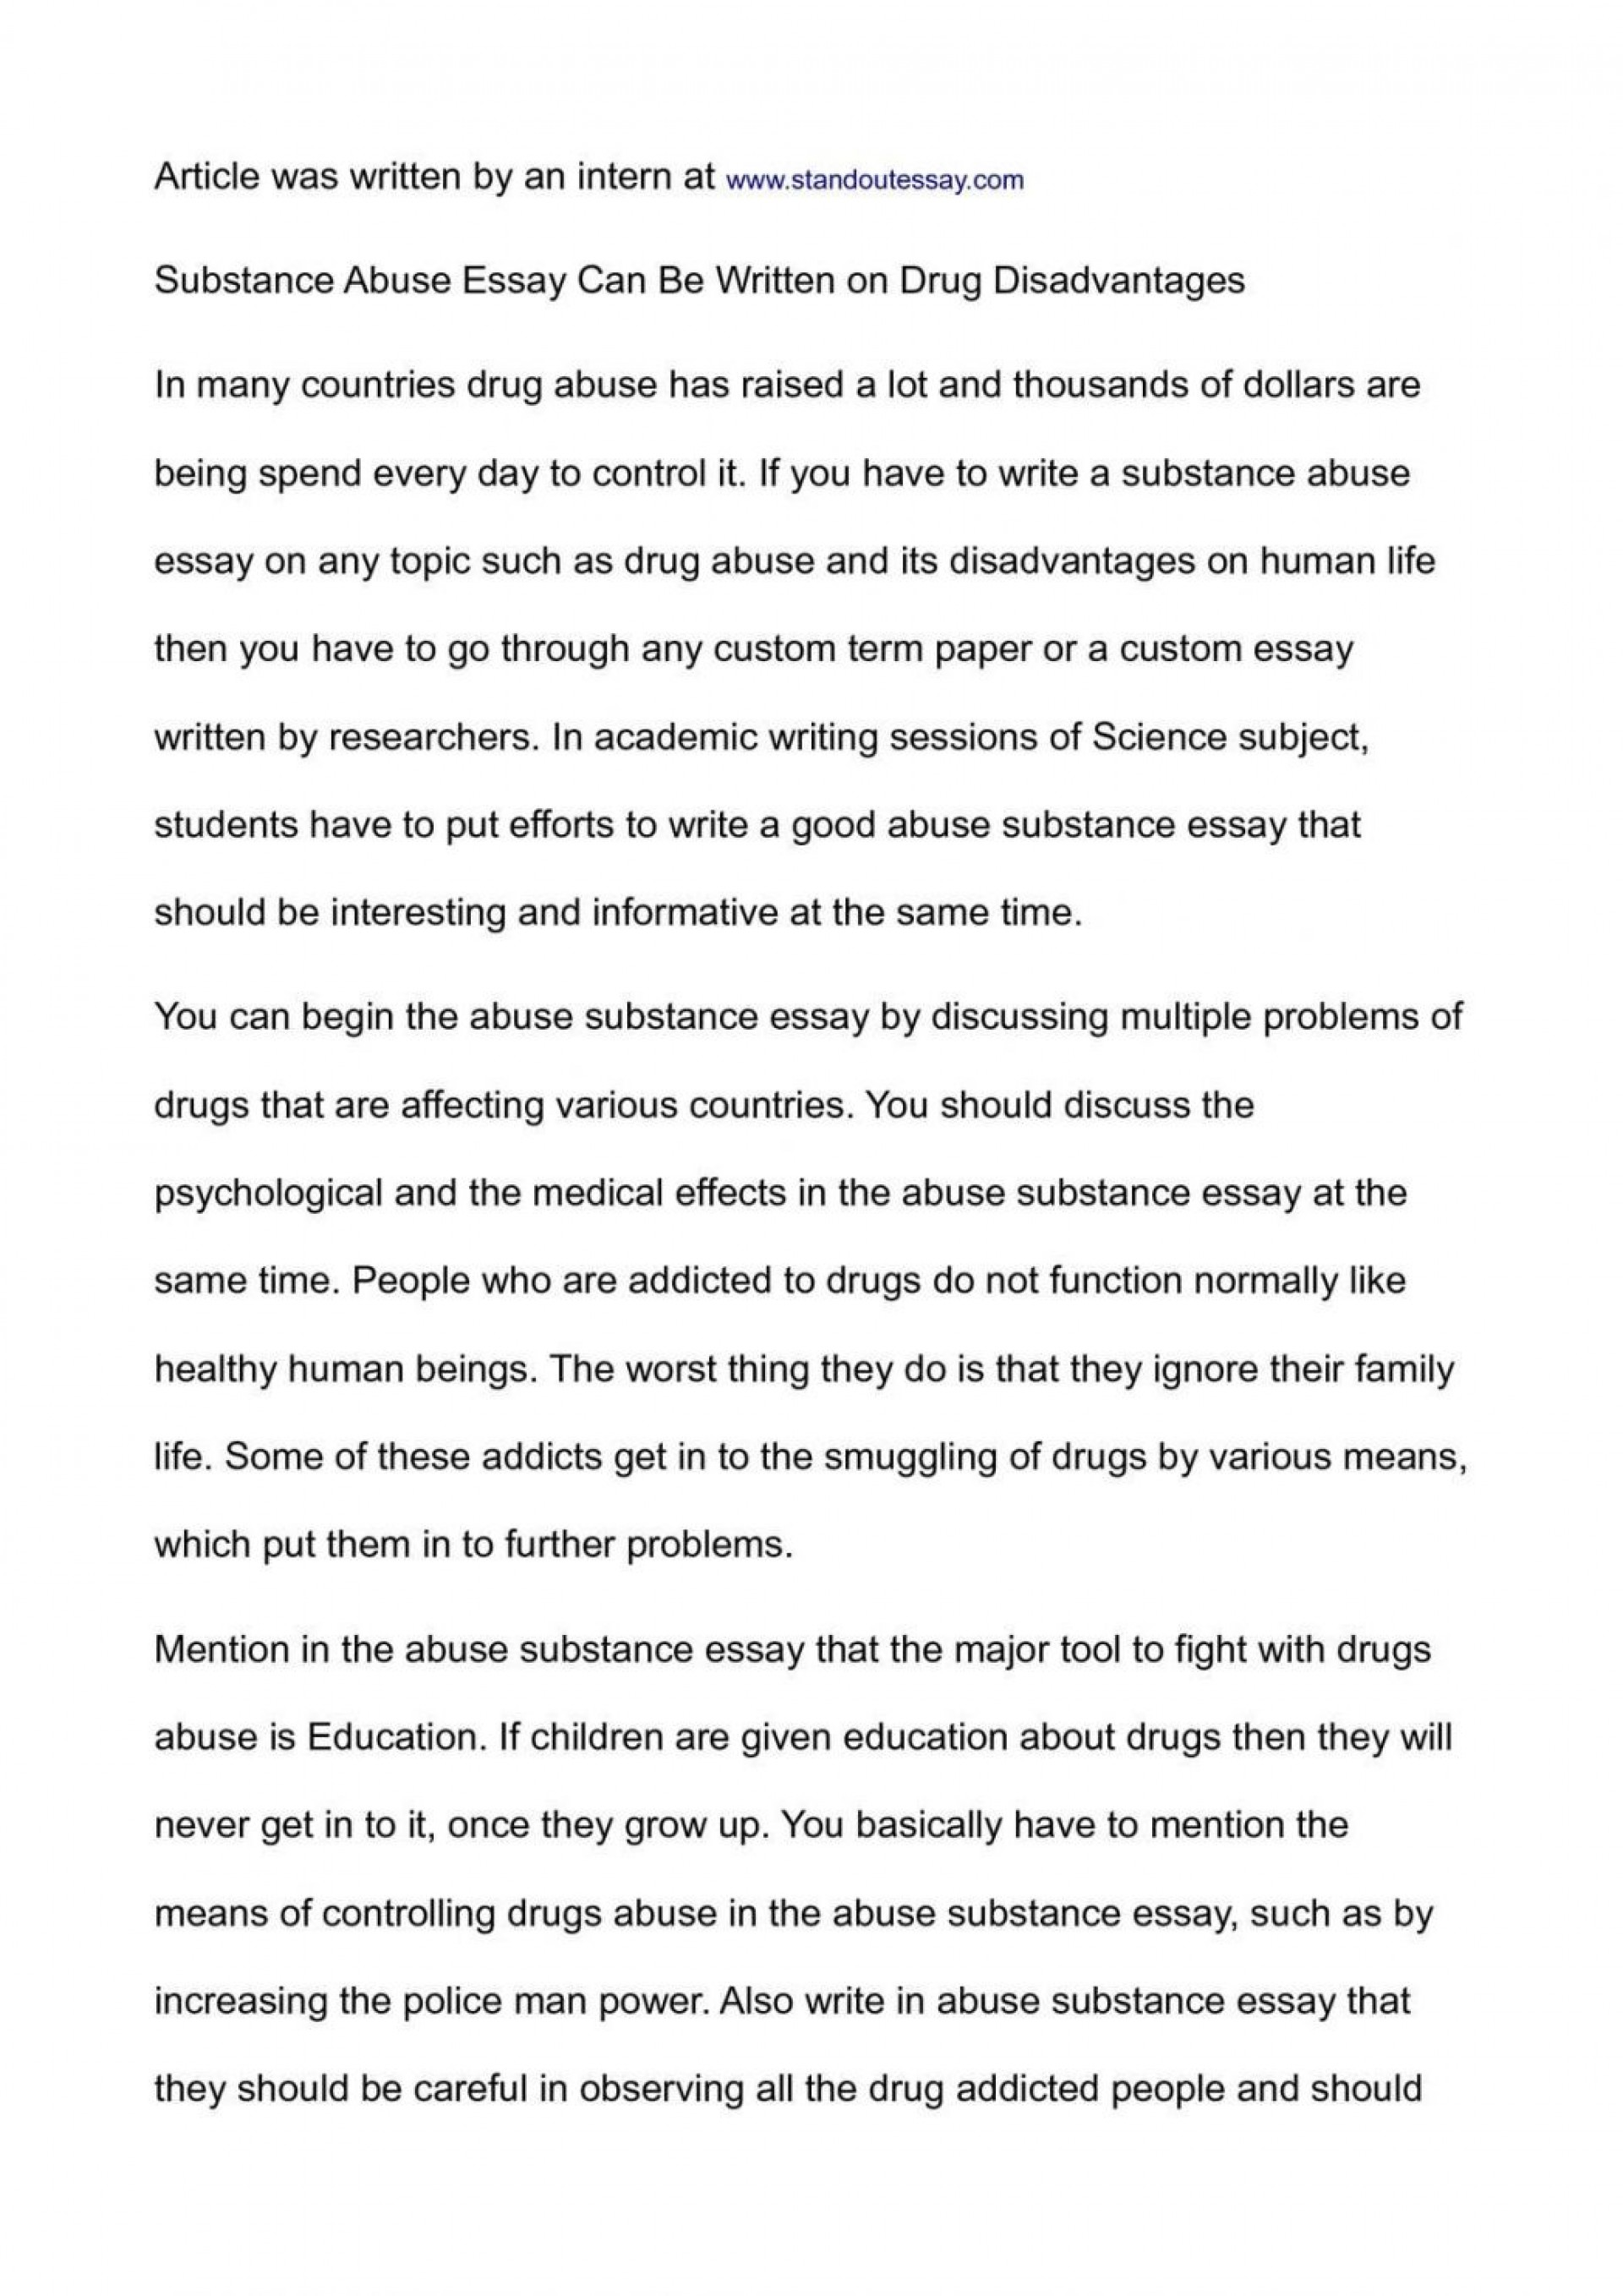 003 Essay Example National Honor Society Conclusion On Substance Abuse Junior Exampl Examples Topics 1048x1483 Archaicawful Of Drug Alcohol 1920